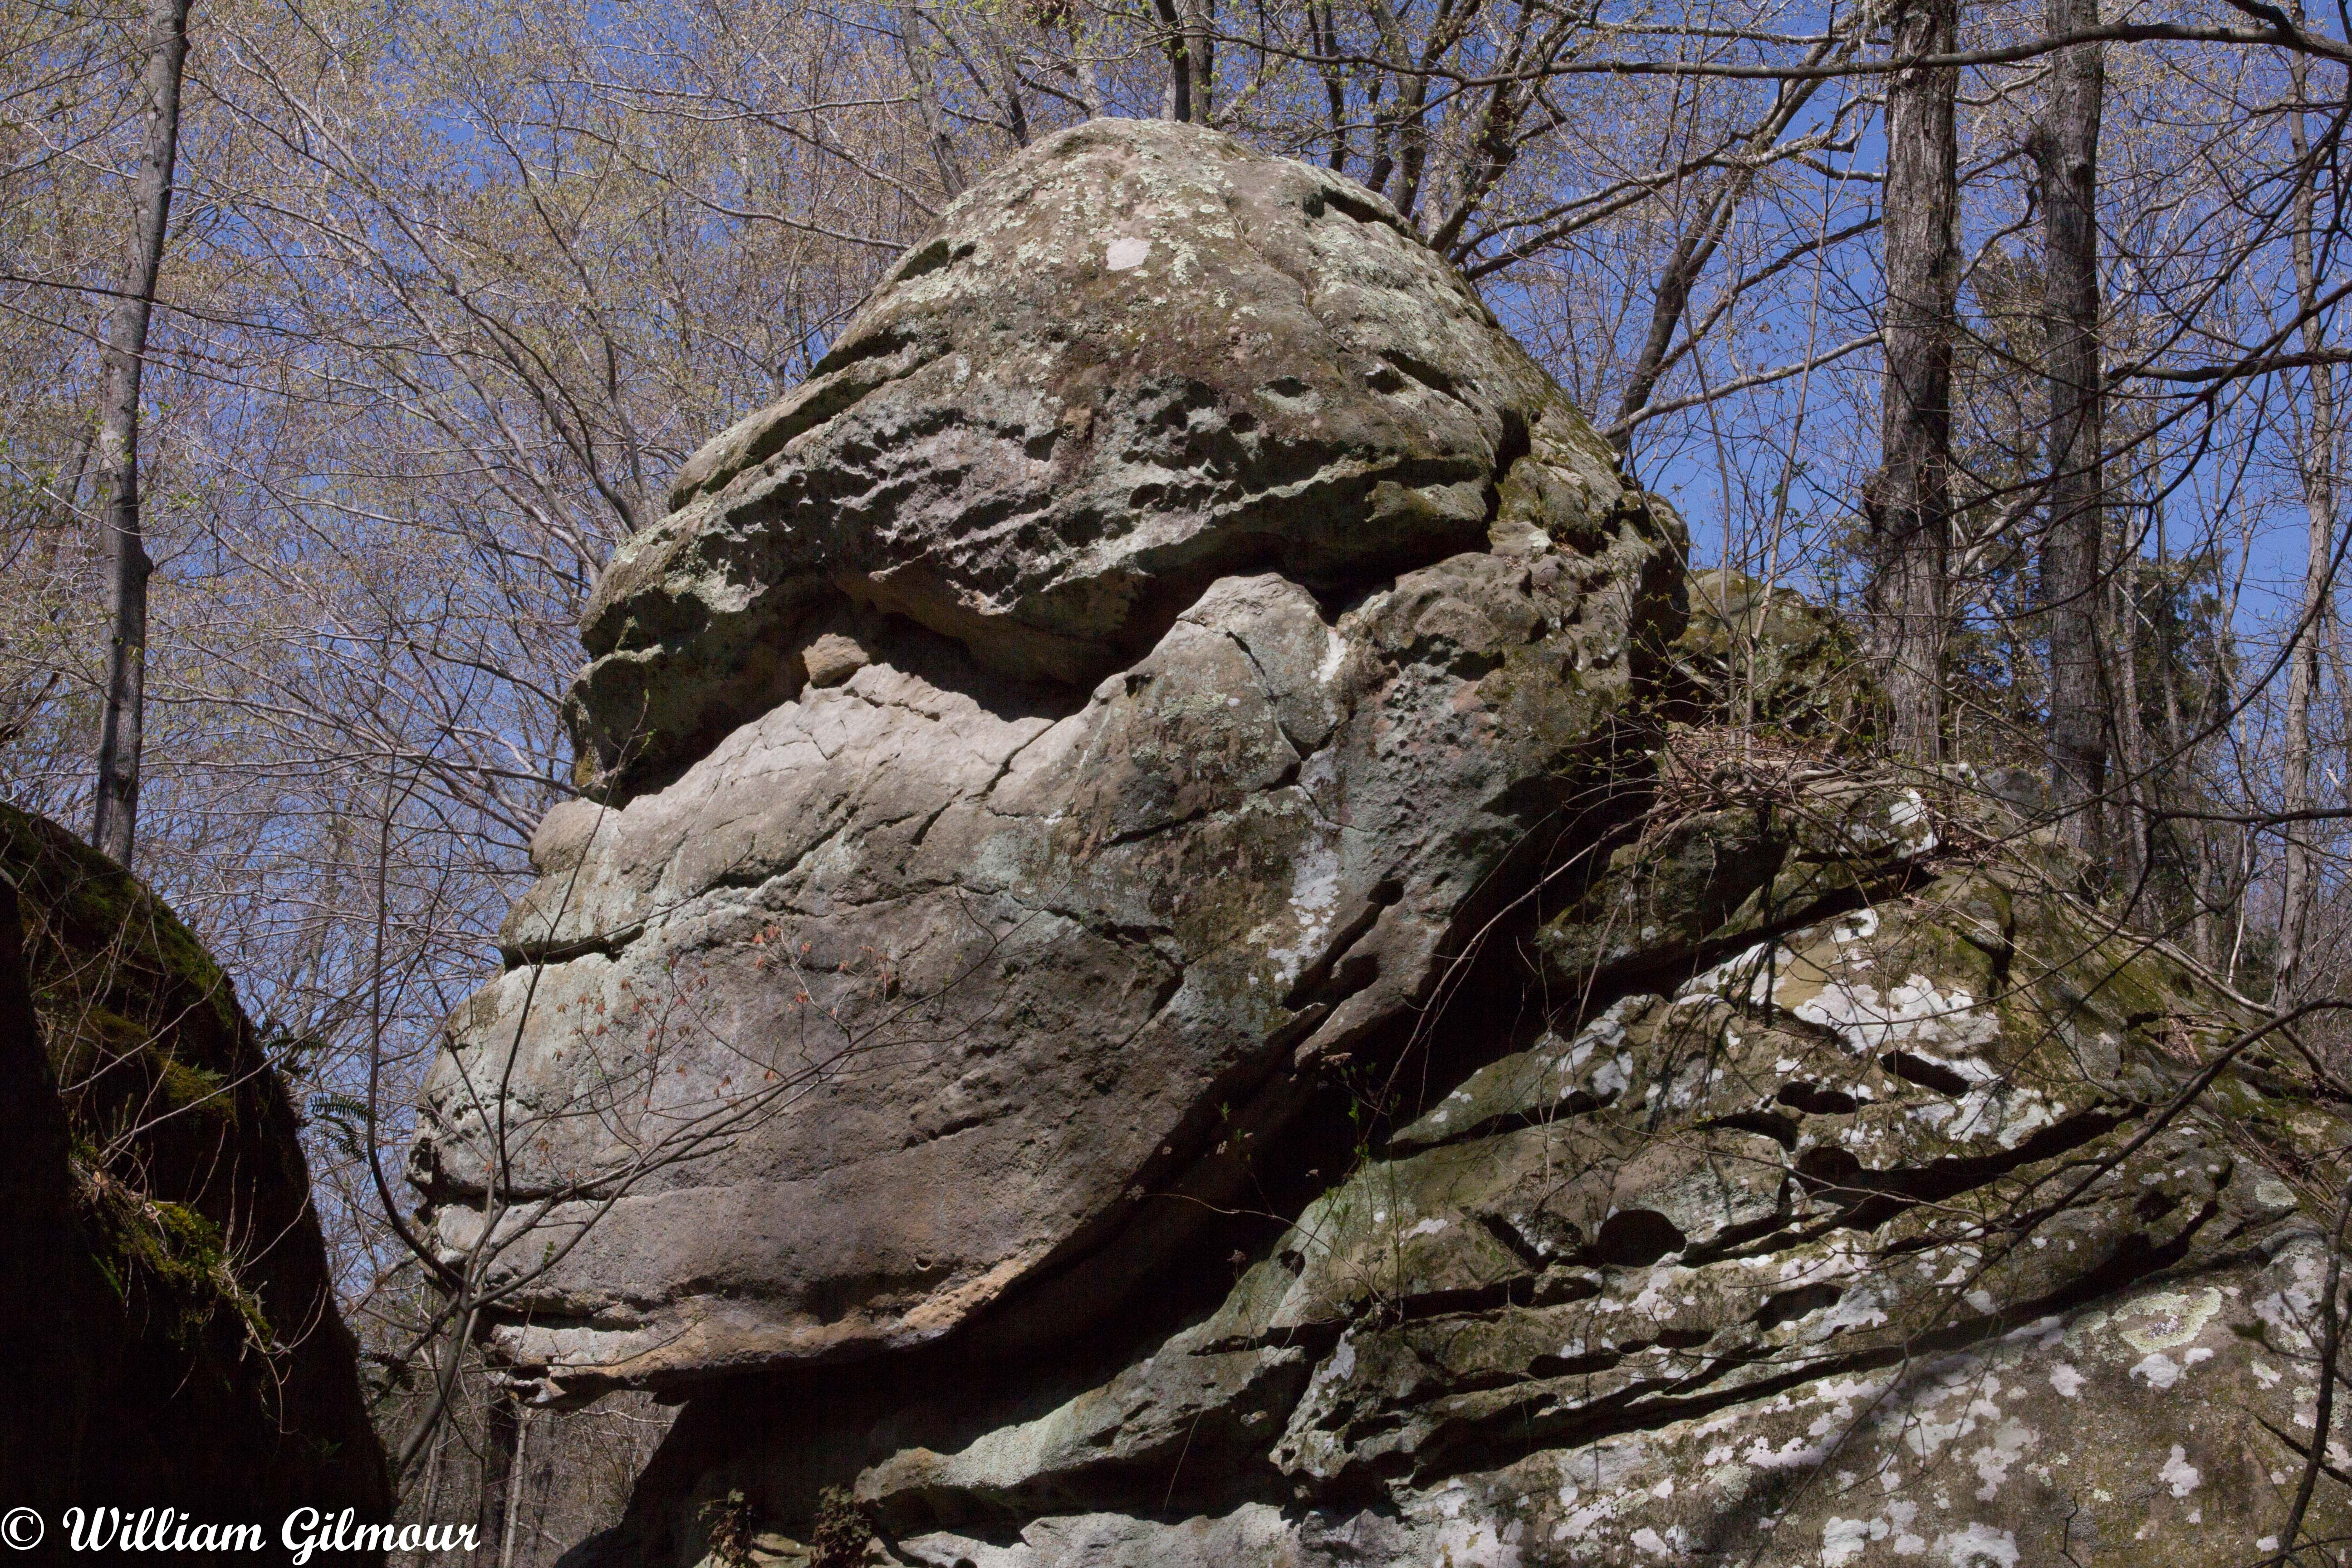 Shawnee National Forest Other Information - The River to